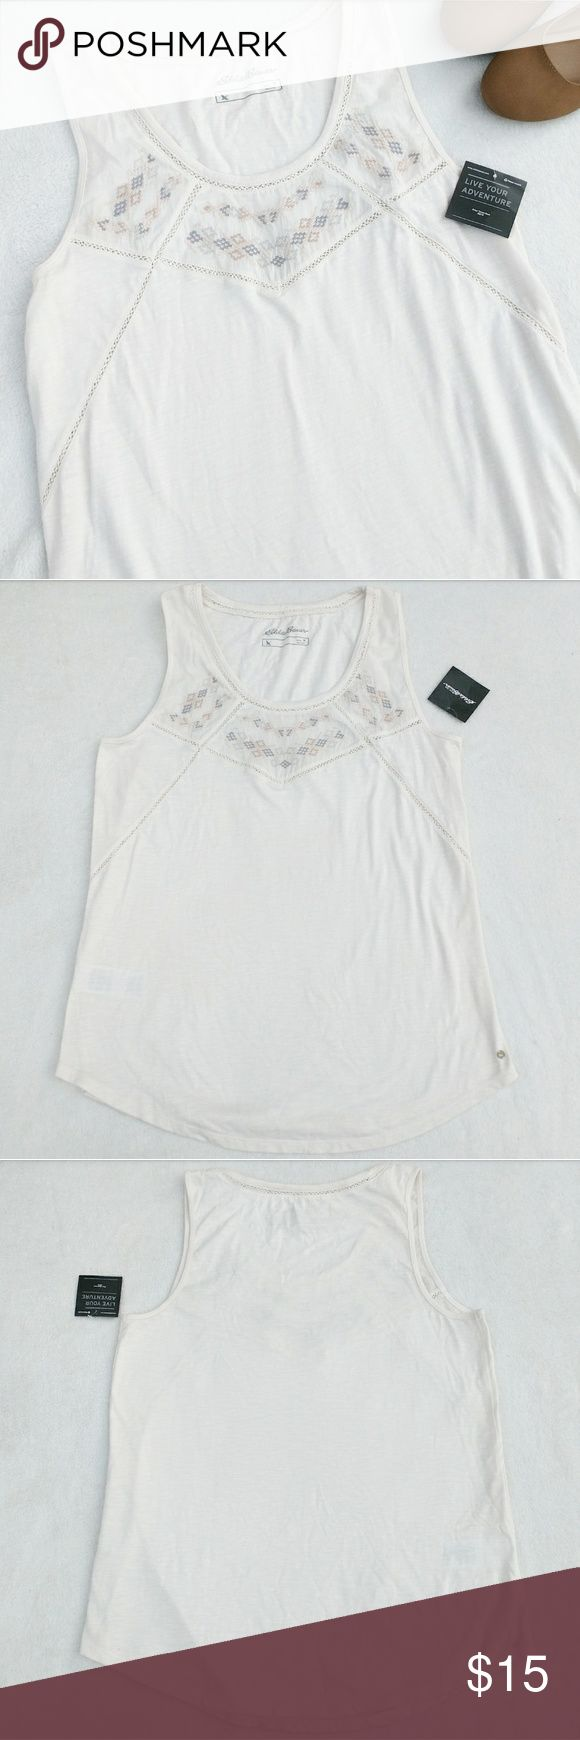 Off White Boho Bohemian Embroidered Tank Top Shirt Embroidered top by Eddie Bauer.  New with tags.  Is an off white, almost light creme colored shirt.   Has a geometric, tribal or southwestern design  embroidery along the neckline in pastels.   Has stripes of eyelet fabric.   Has a small spot on the back of the shirt, shown in the last picture, that was there when purchased.   Size medium. Eddie Bauer Tops Tank Tops